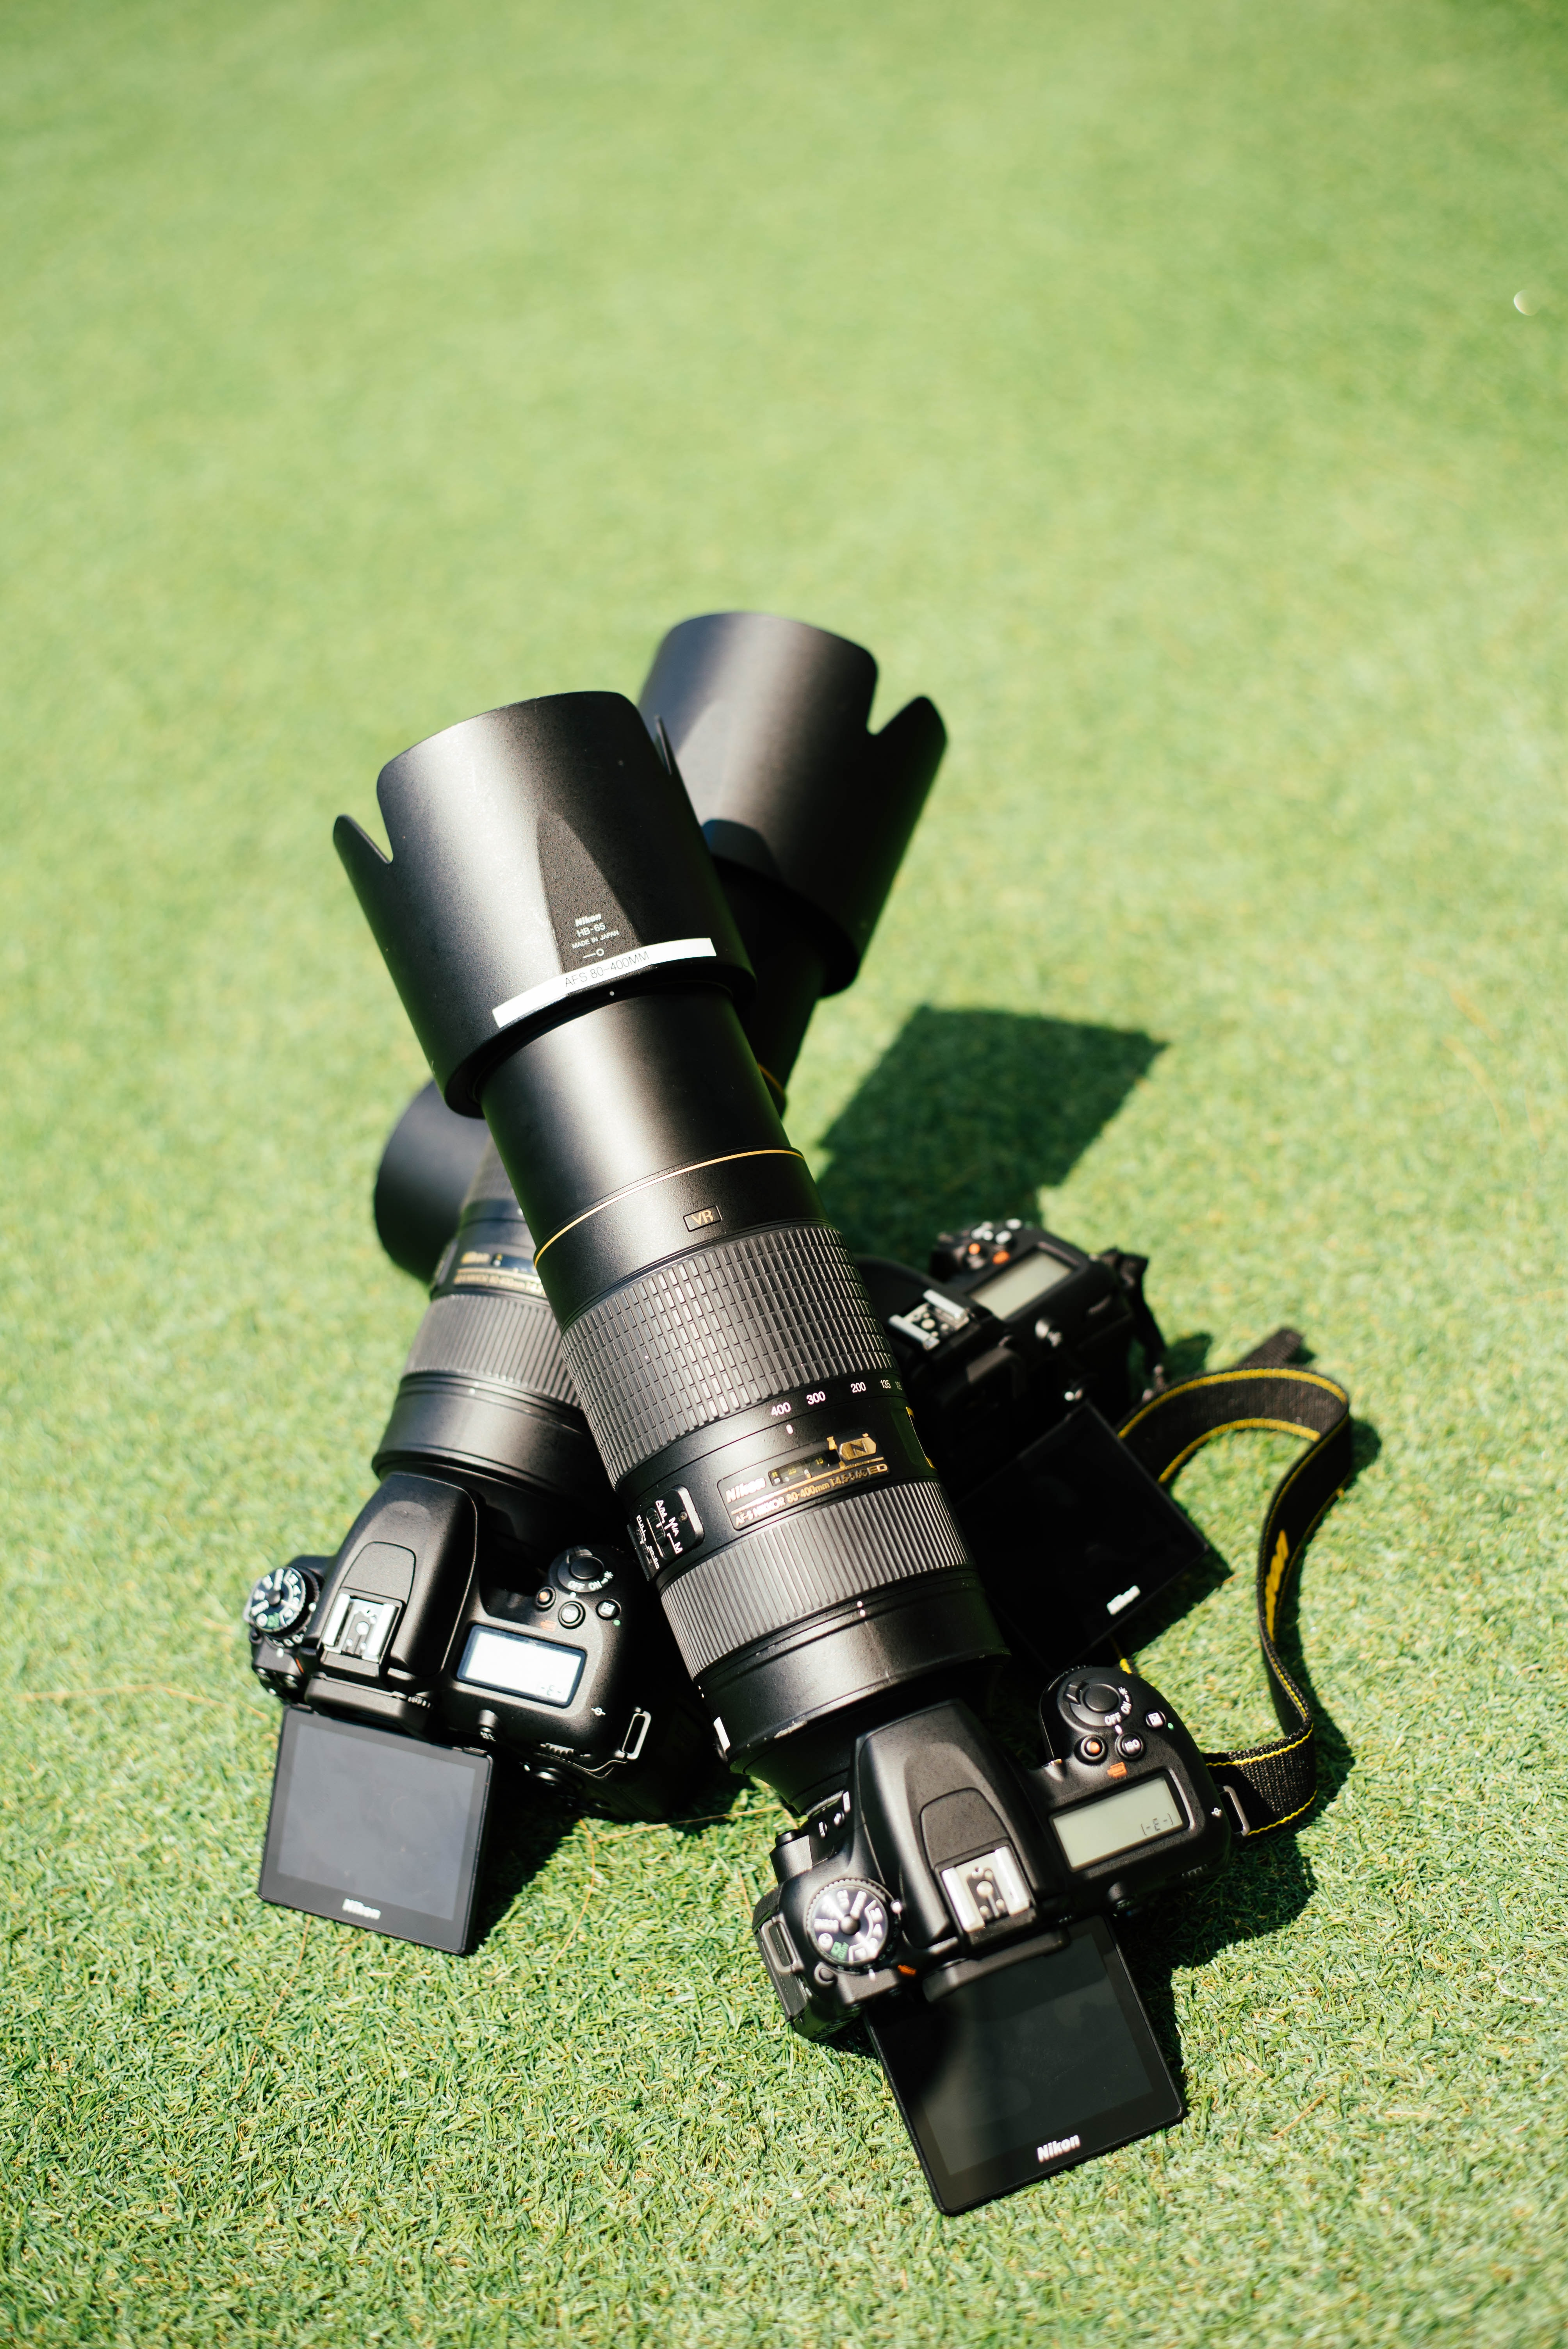 two black Nikon DSLR cameras on green grass